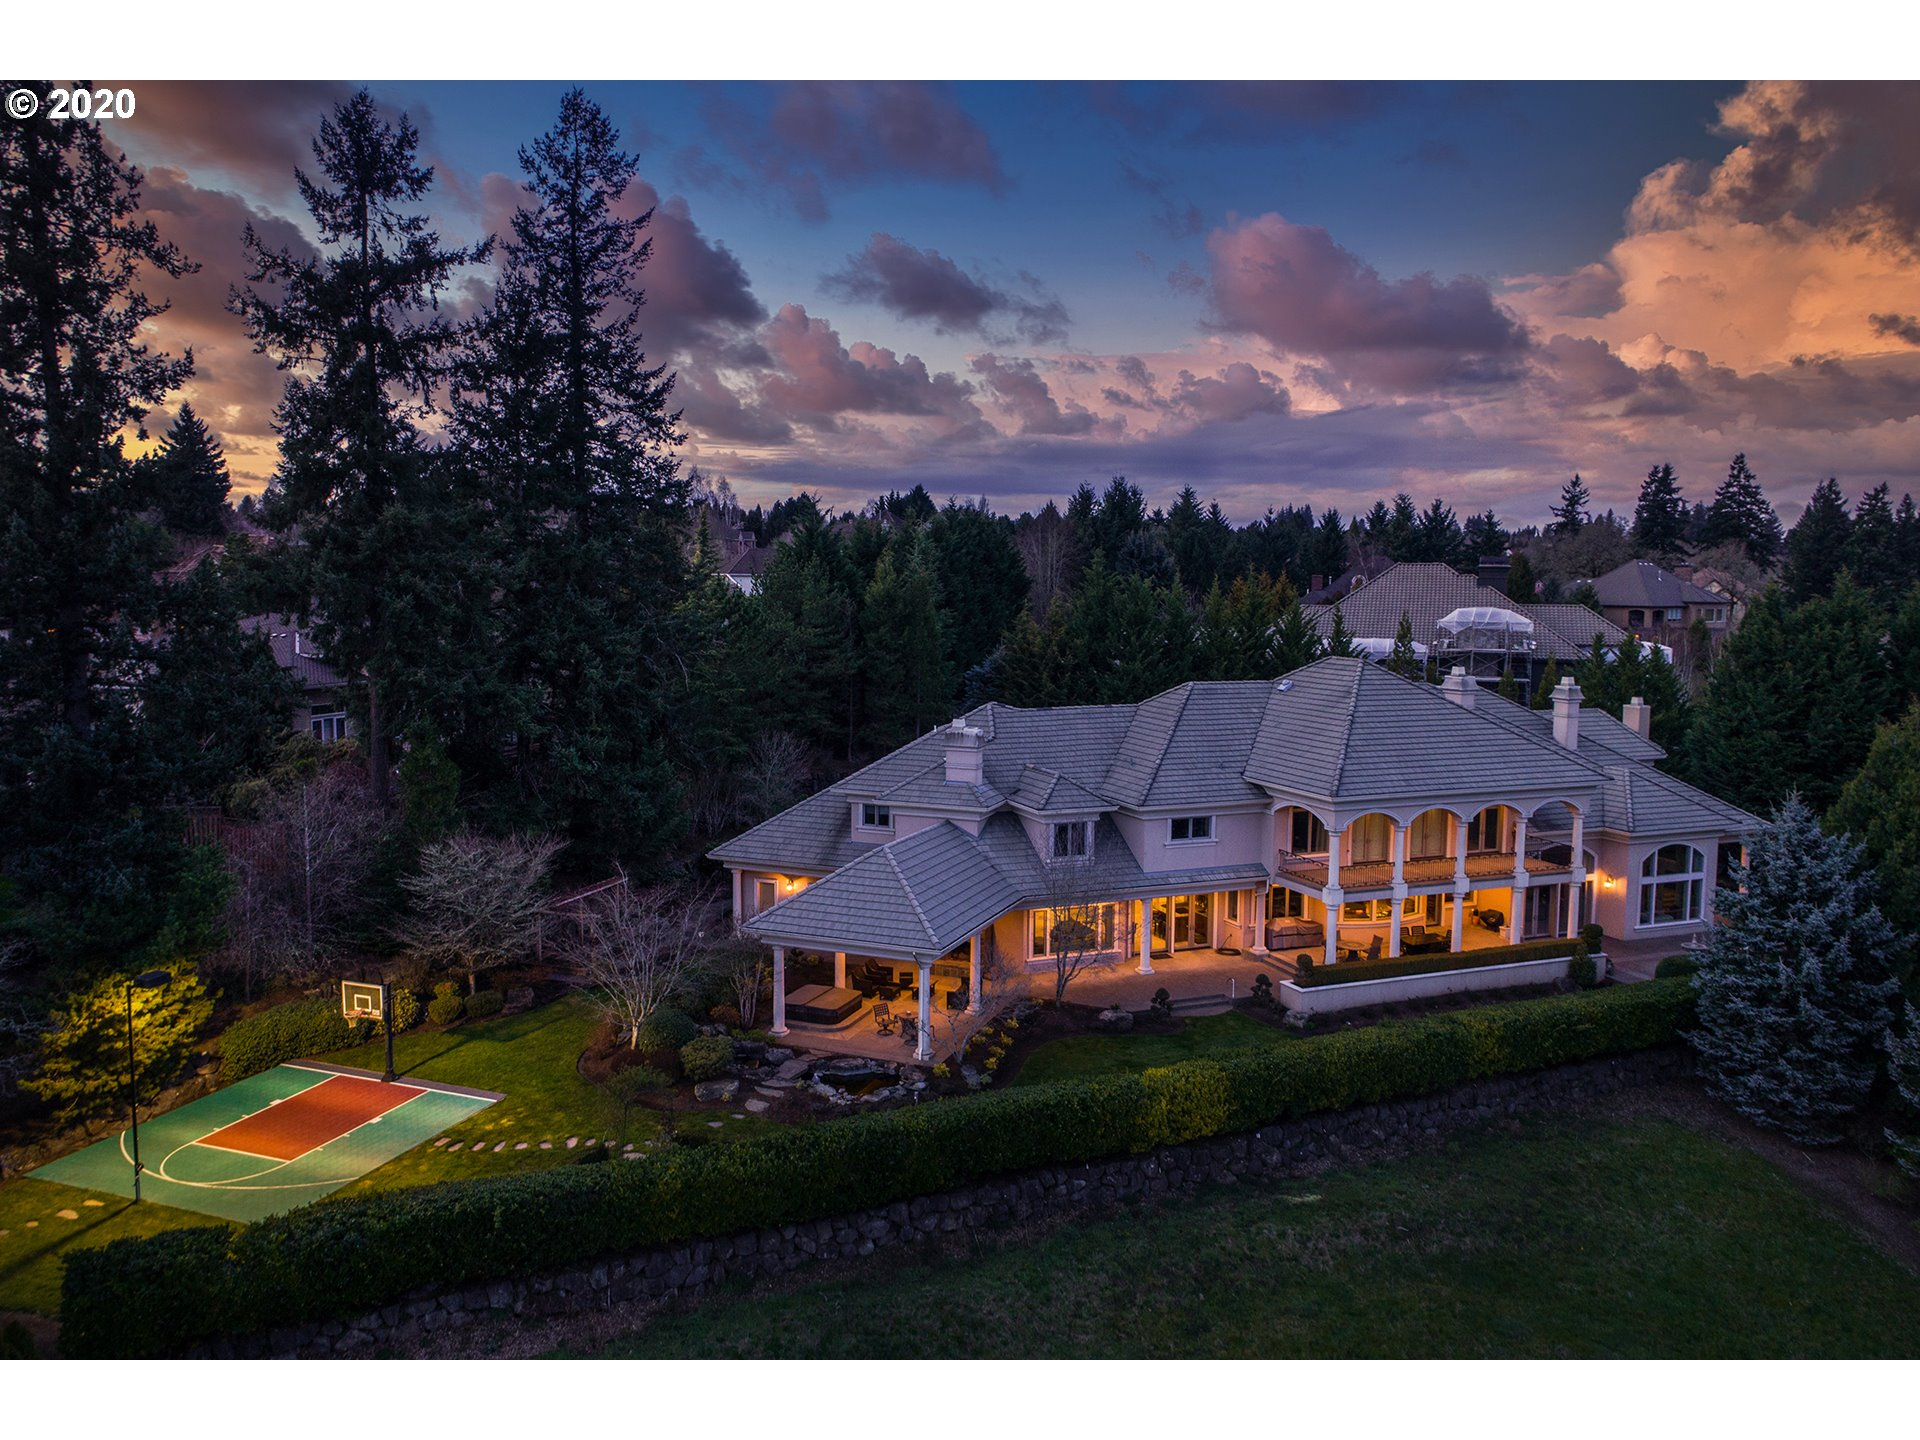 This luxurious Le Chavalier home with Palace of Versailles-inspired design & gorgeous Pacific Northwest views is a destination to come home to every day. Featuring 4 bdrms including a spacious master suite with private patio, all bdrms with ensuite baths. Stunning Mt. Hood view from the nearly 1-acre property with $100G of new landscaping. Wide arched windows and French-inspired architecture including covered balconies on both floors featuring gorgeous views. 700+ bottle wine room.